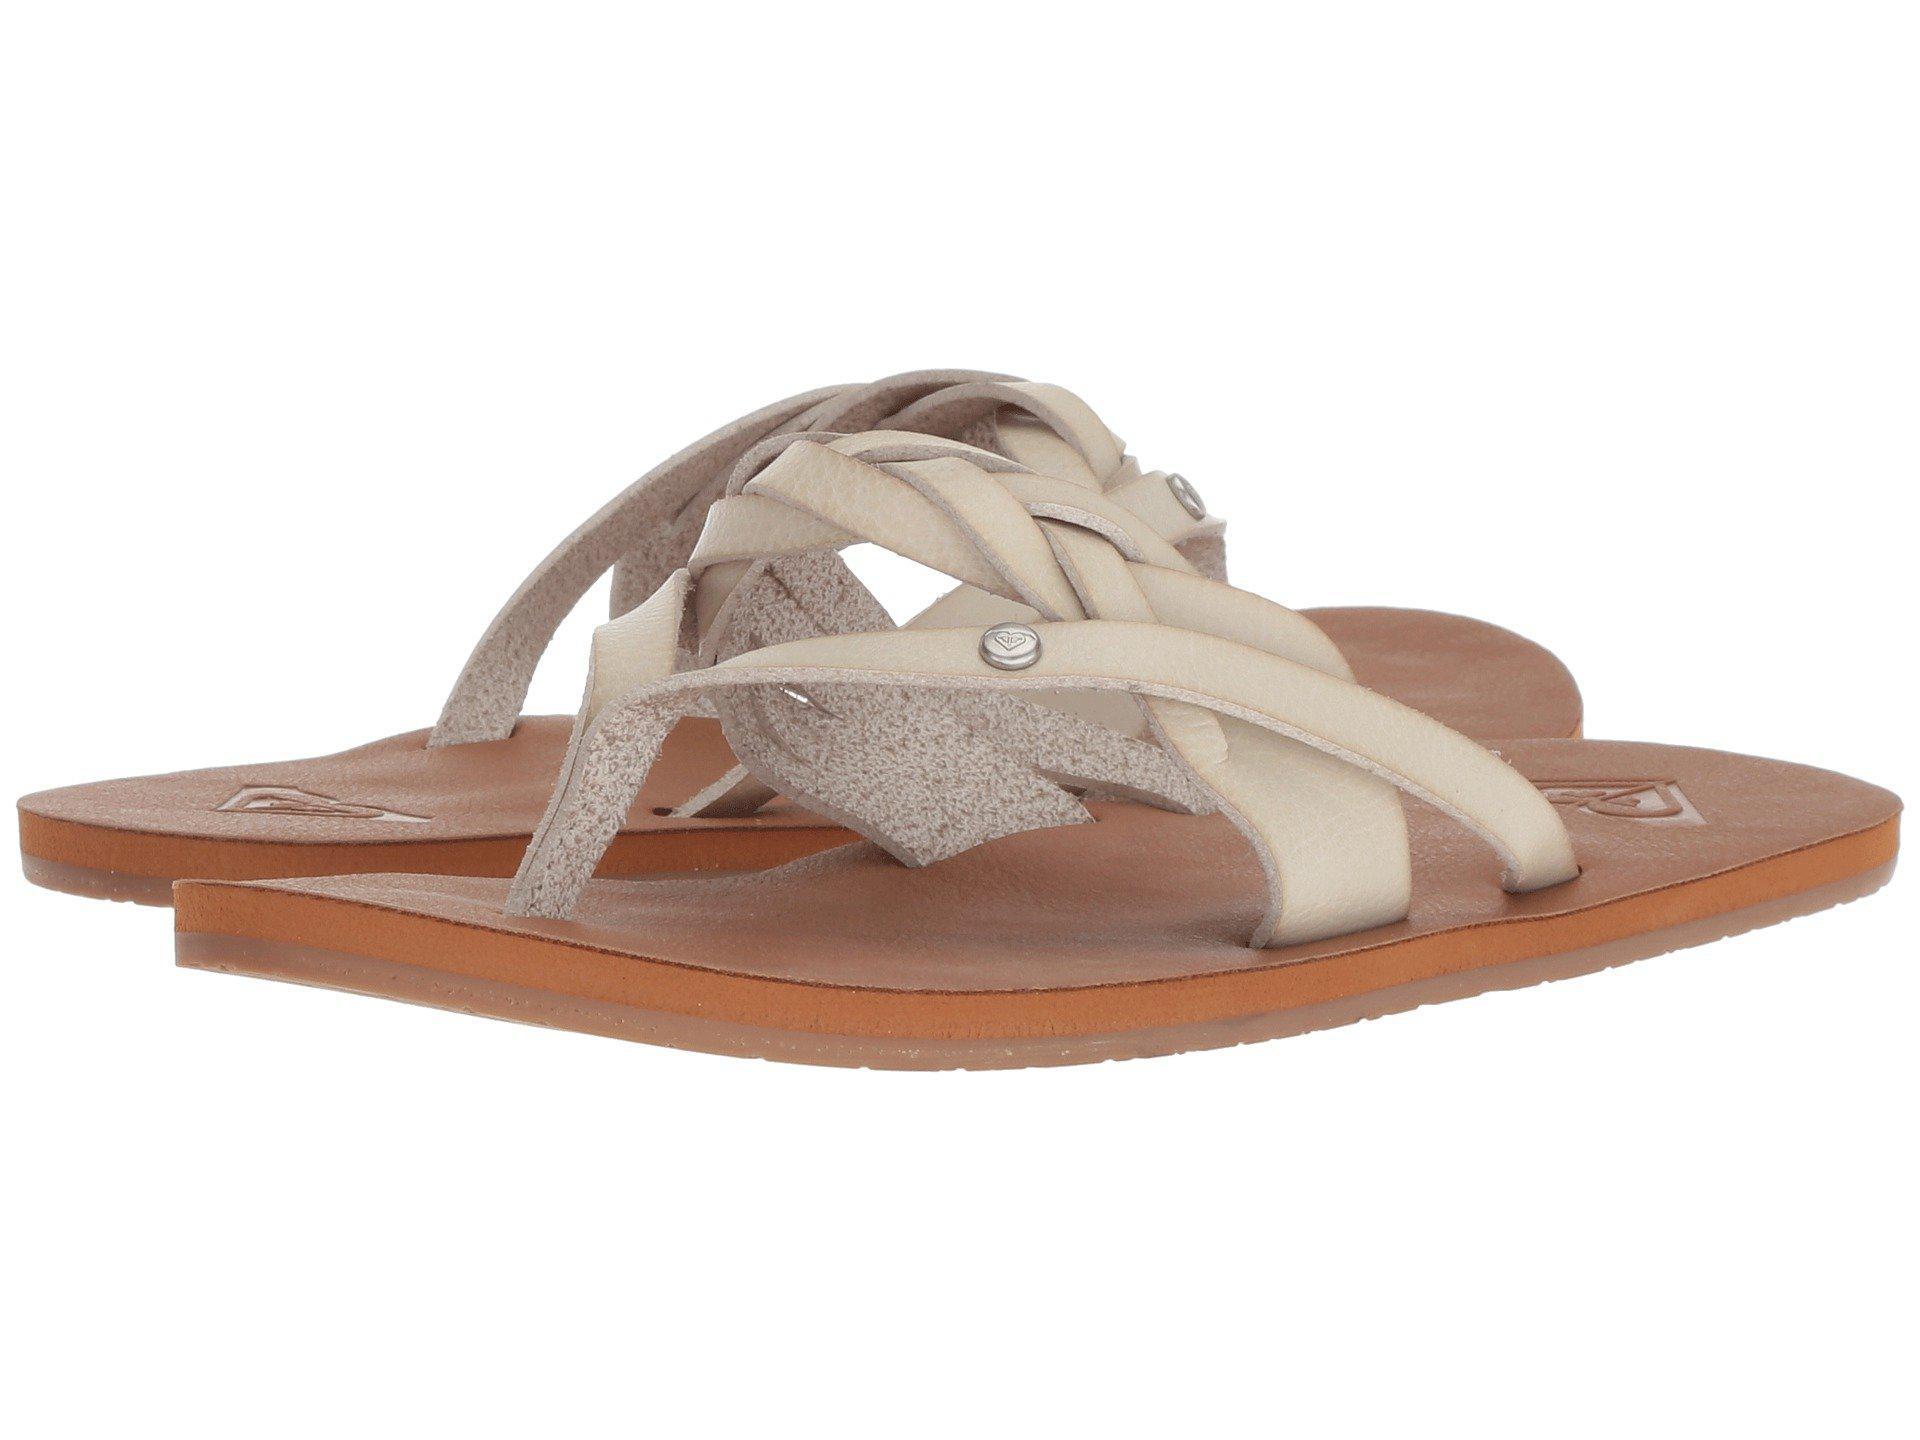 f040588bc8c36f Lyst - Roxy Evelyn (white) Women s Sandals in White